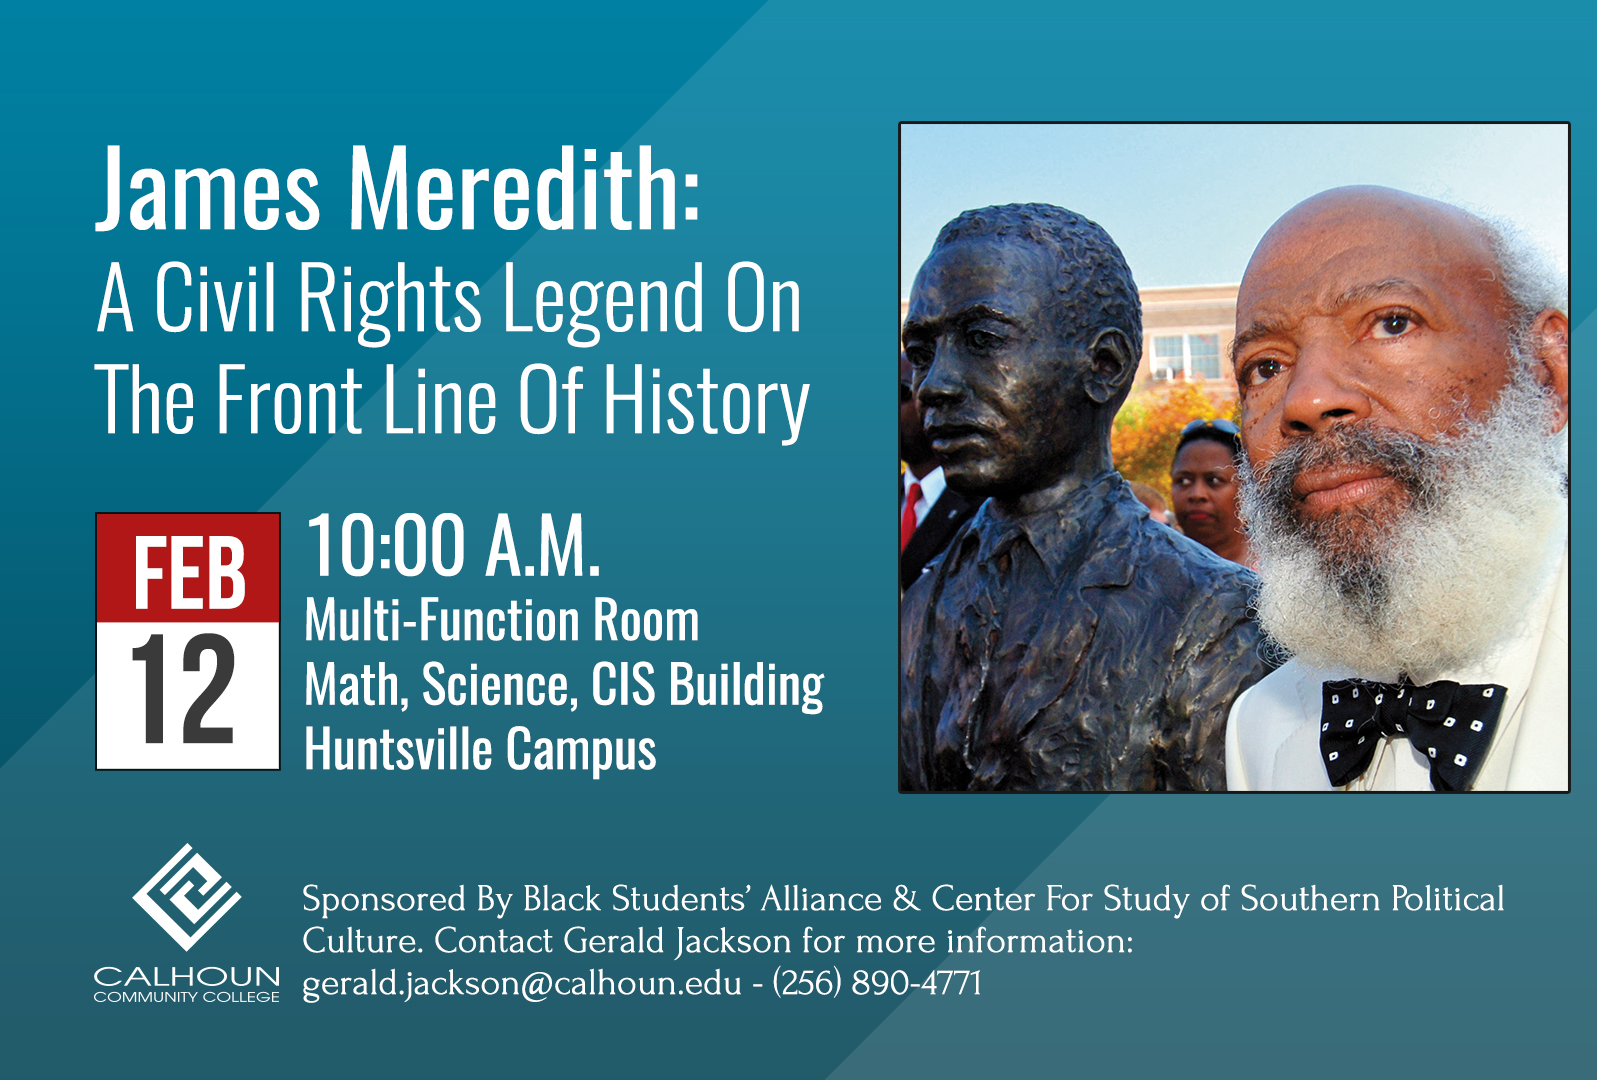 James Meredith event Graphic